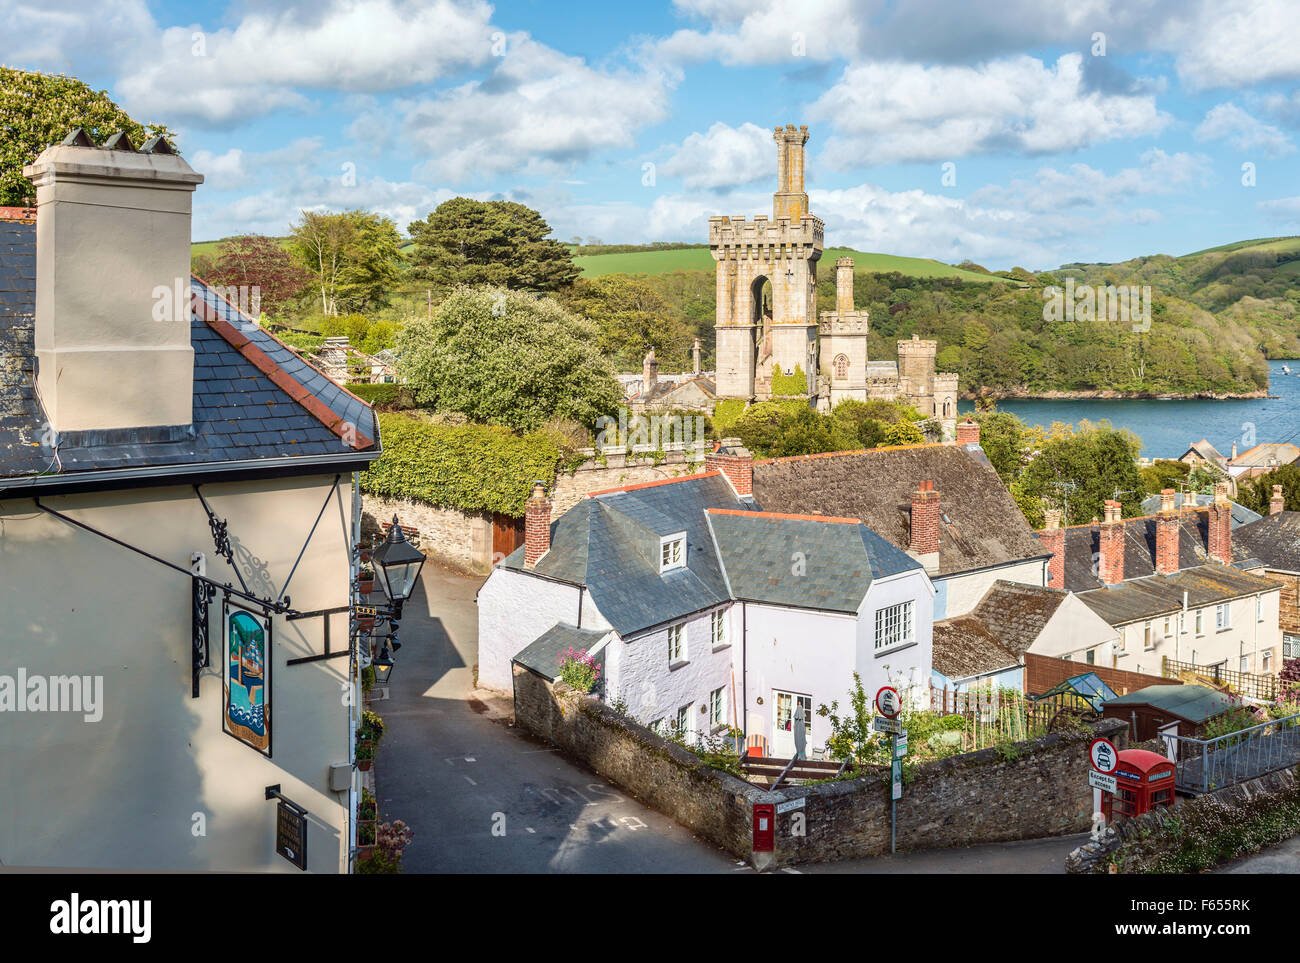 Scenic view over the old town of Fowey, Cornwall, England, UK | Malerische Aussicht ueber die Altstadt von Fowey, - Stock Image